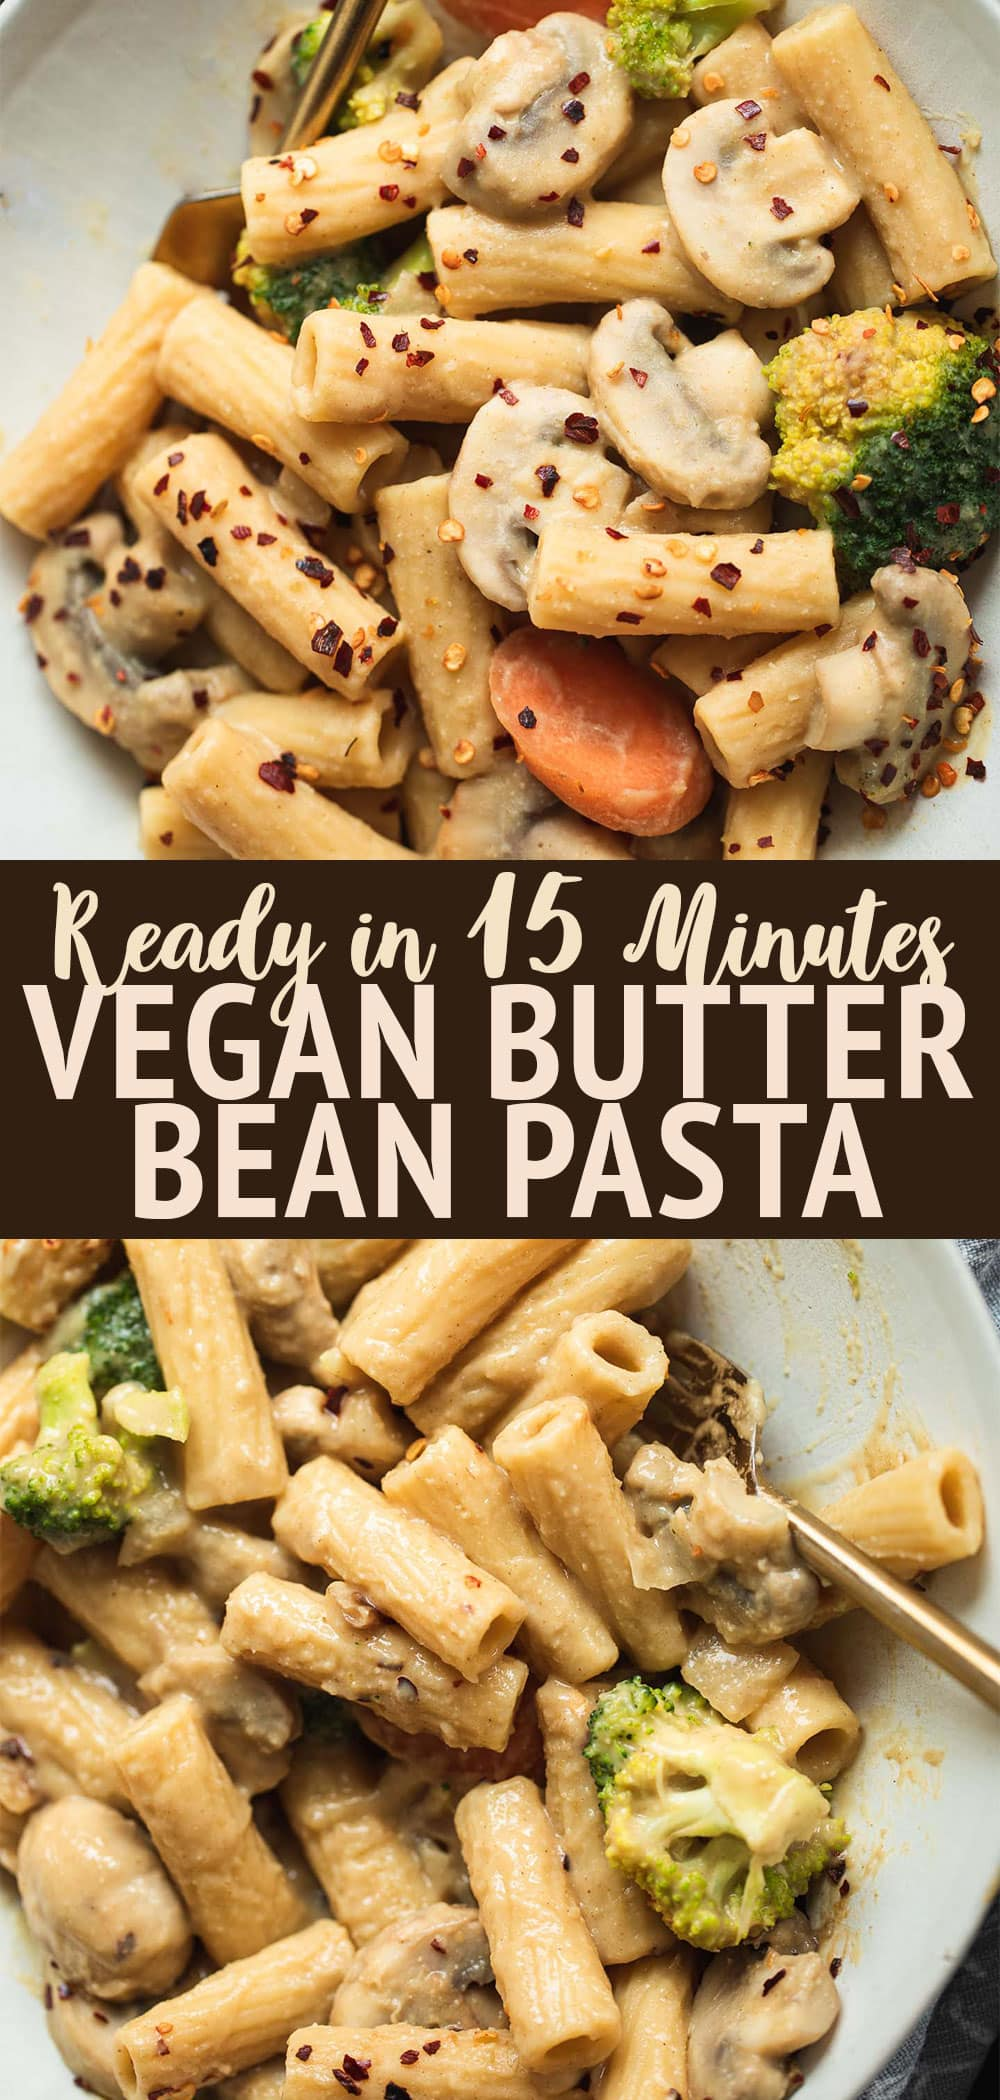 Vegan butter bean pasta